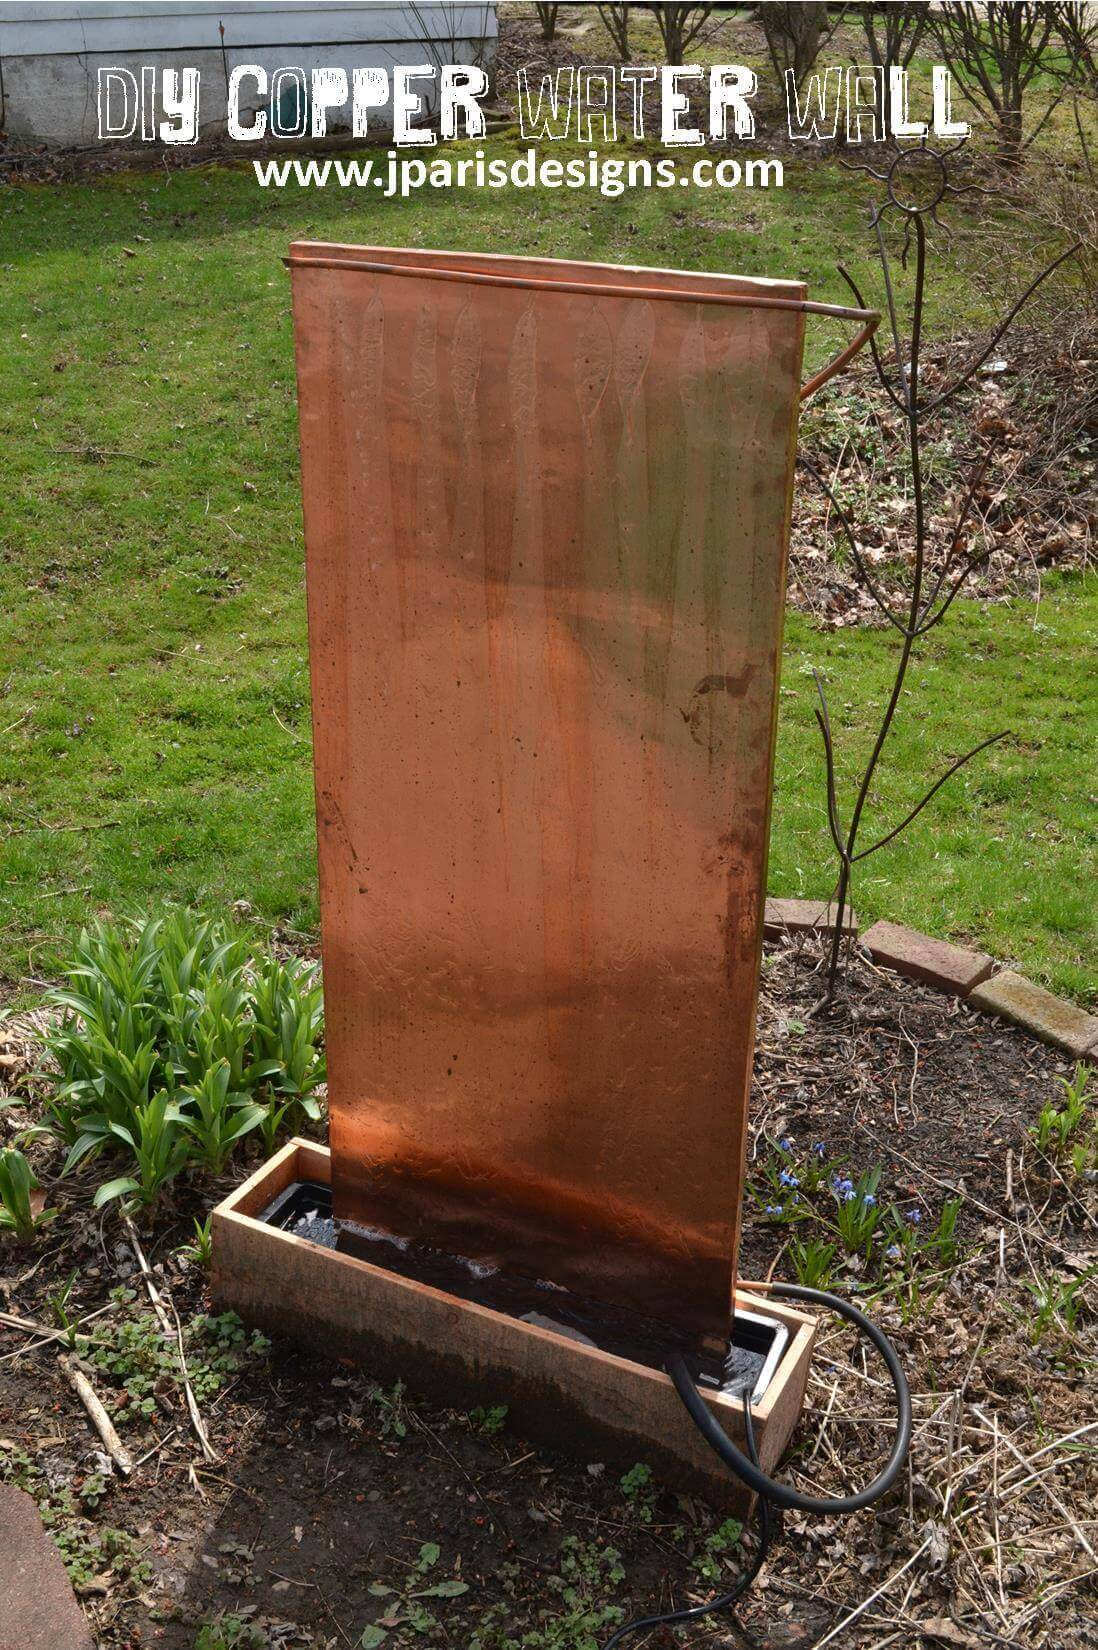 DIY copper water wall